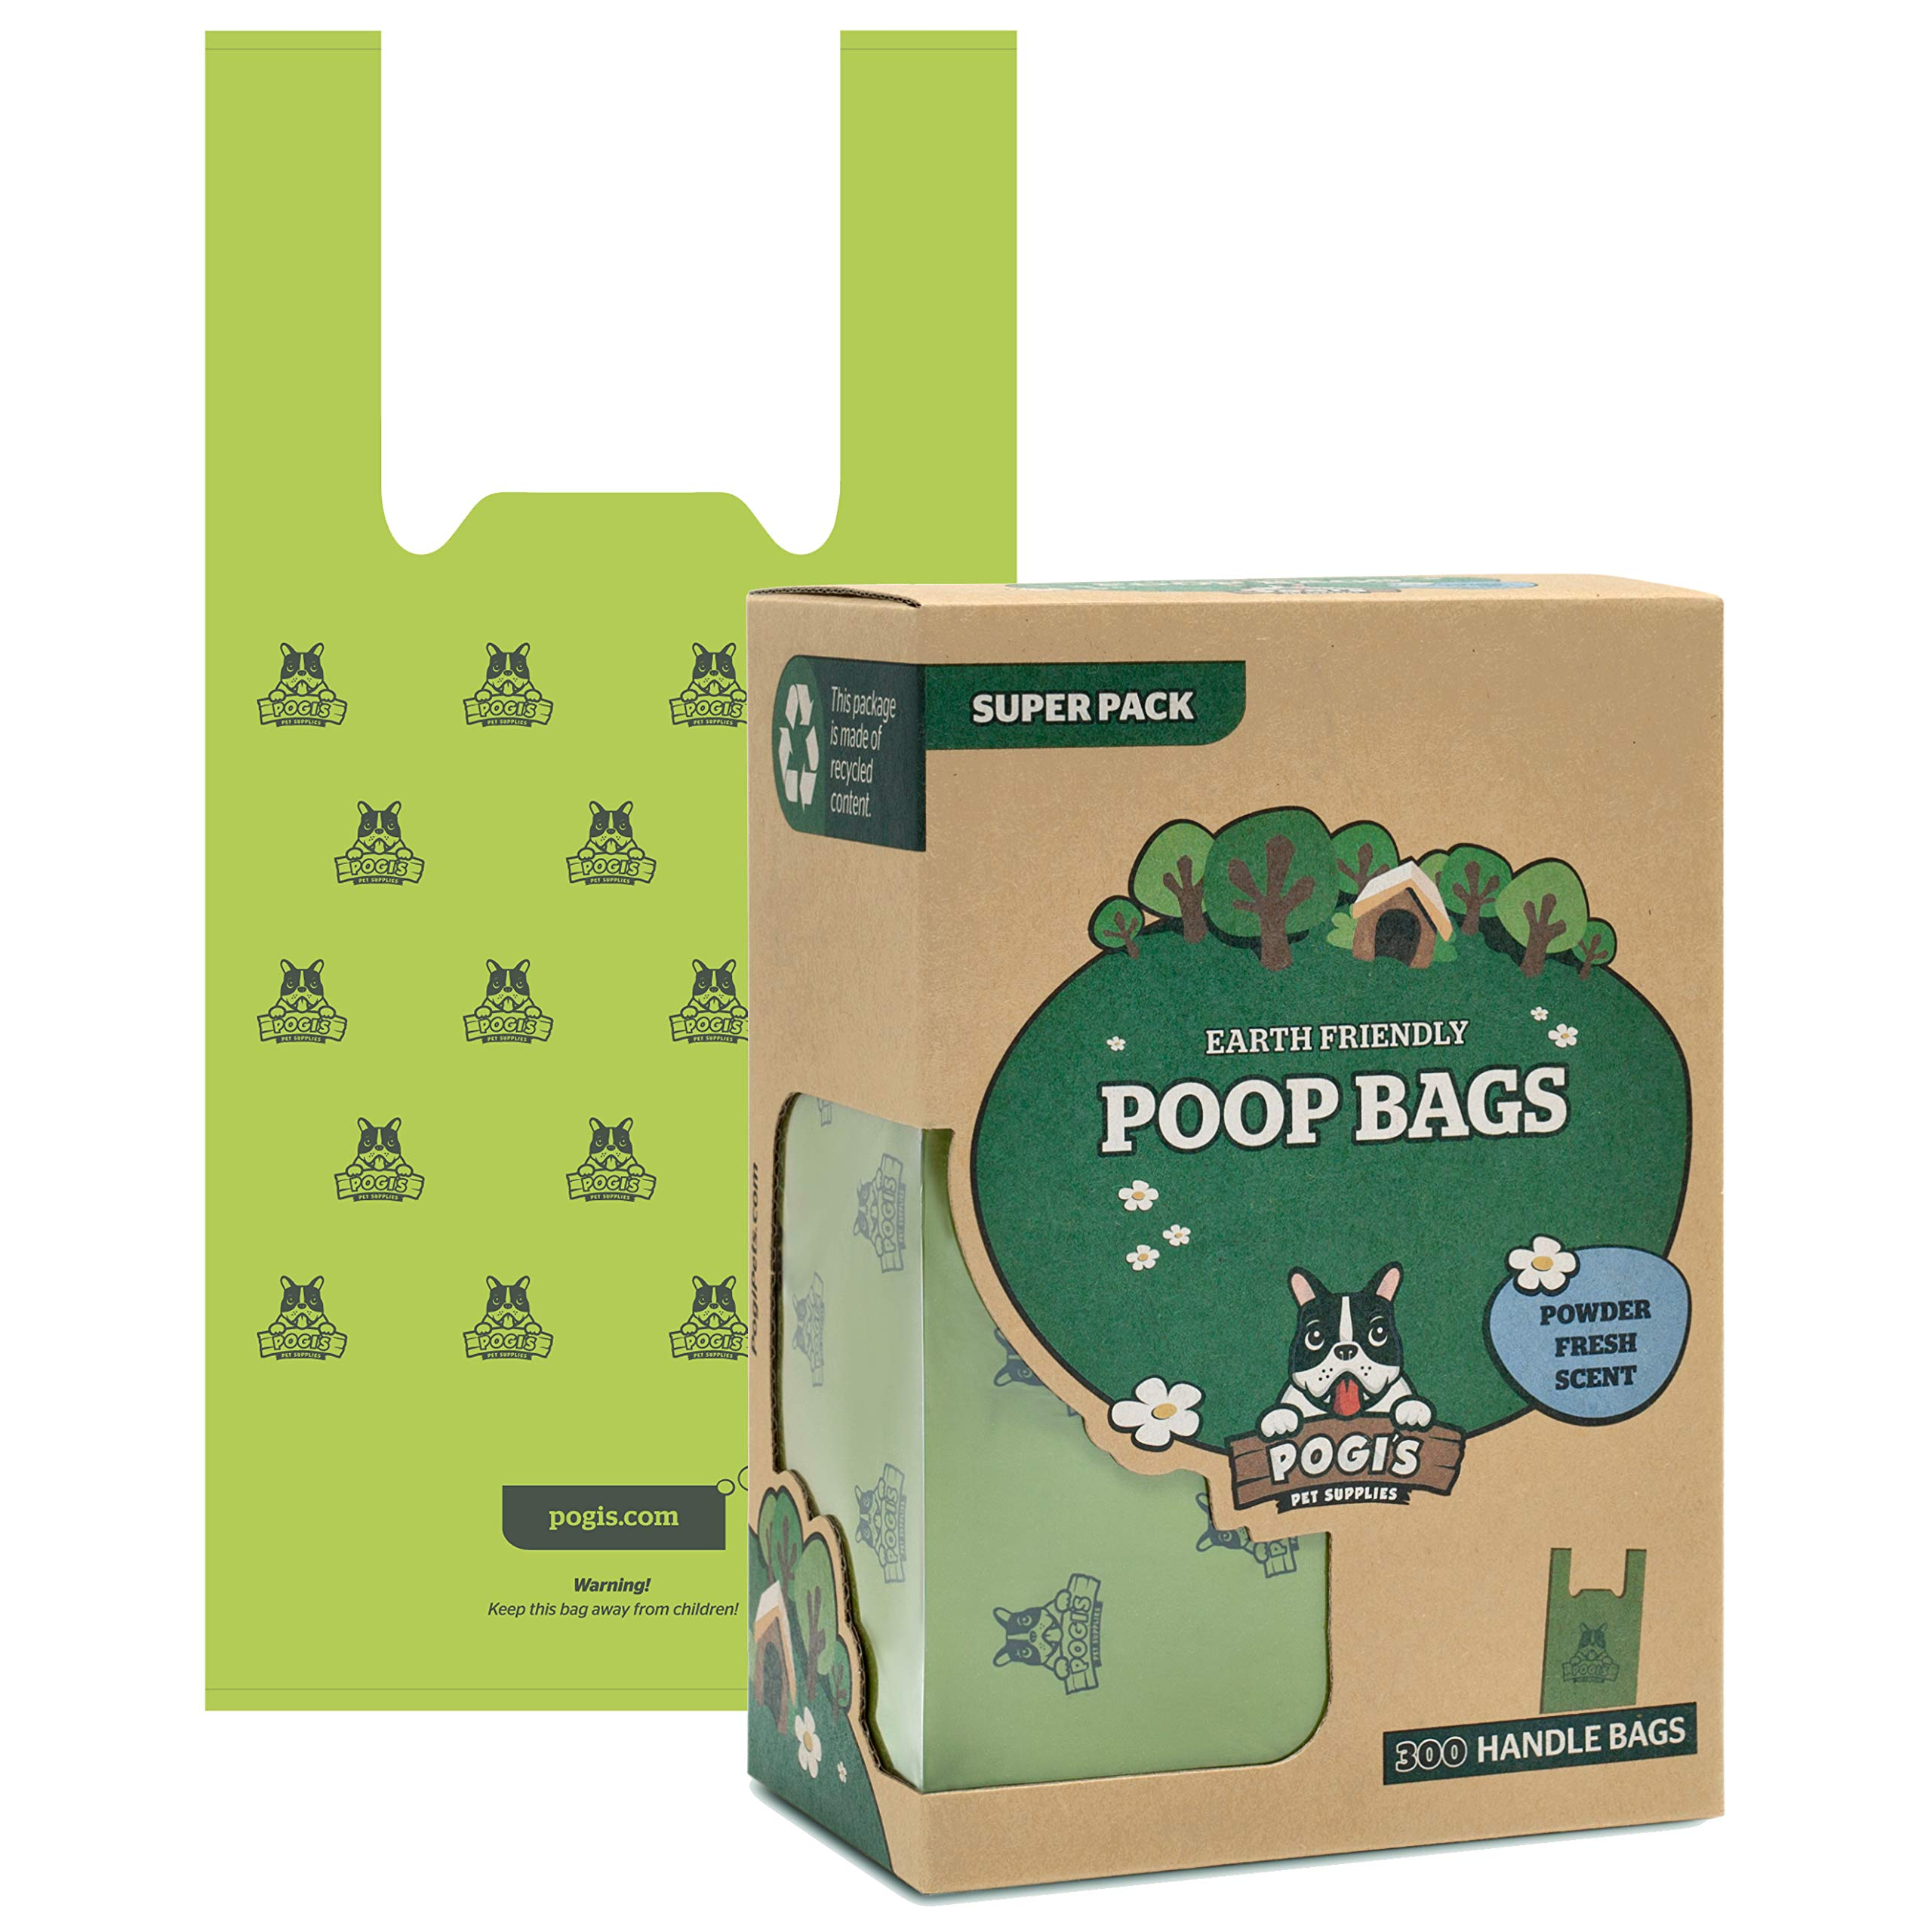 Pogi's Poop Bags - 300 Bags with Easy-Tie Handles - Large, Earth-Friendly, Scented, Leak-Proof Pet Waste Bags by Pogi's Pet Supplies